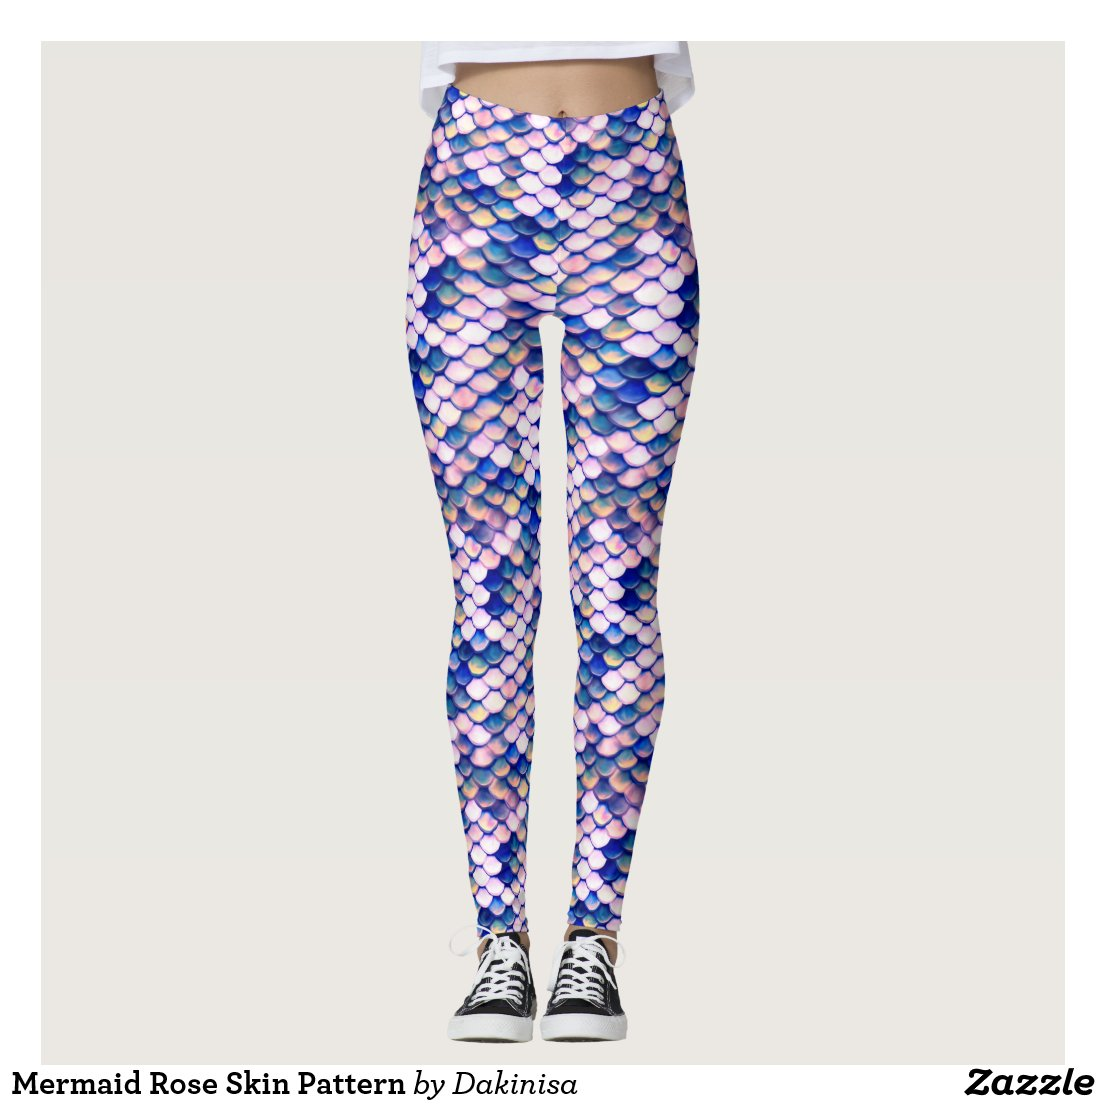 Mermaid Rose Skin Pattern Leggings